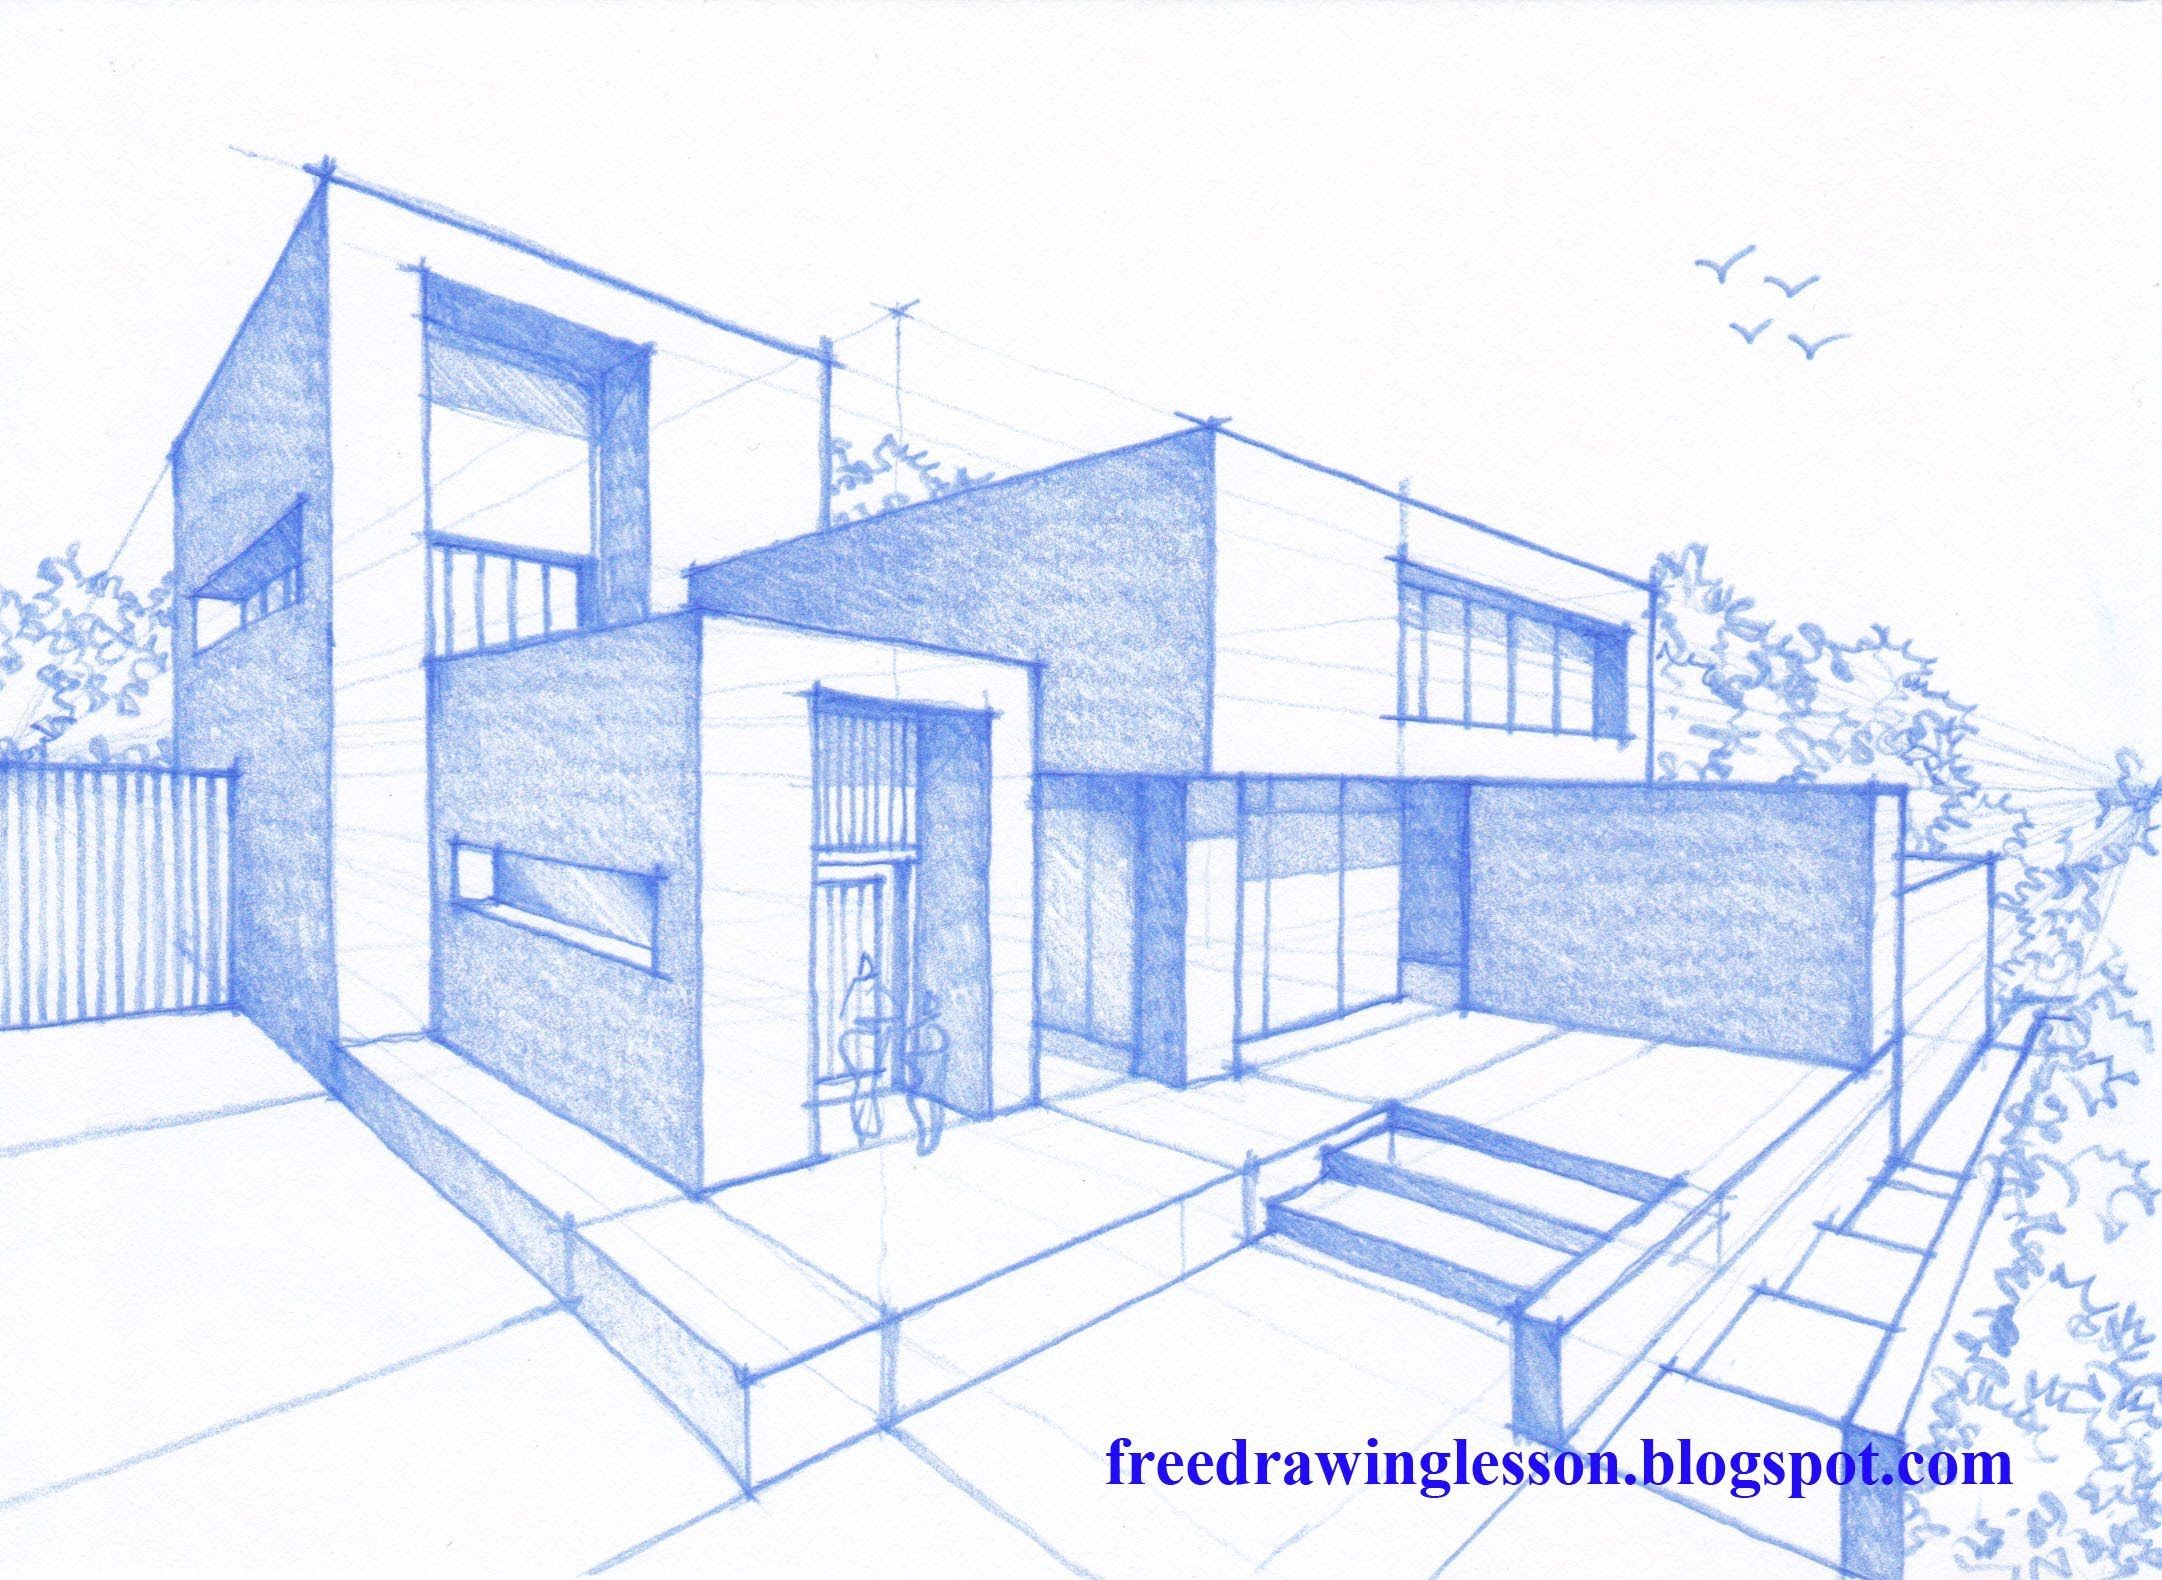 Architectural Drawings Of Modern Houses let us try to draw this house designfollowing the stepstep